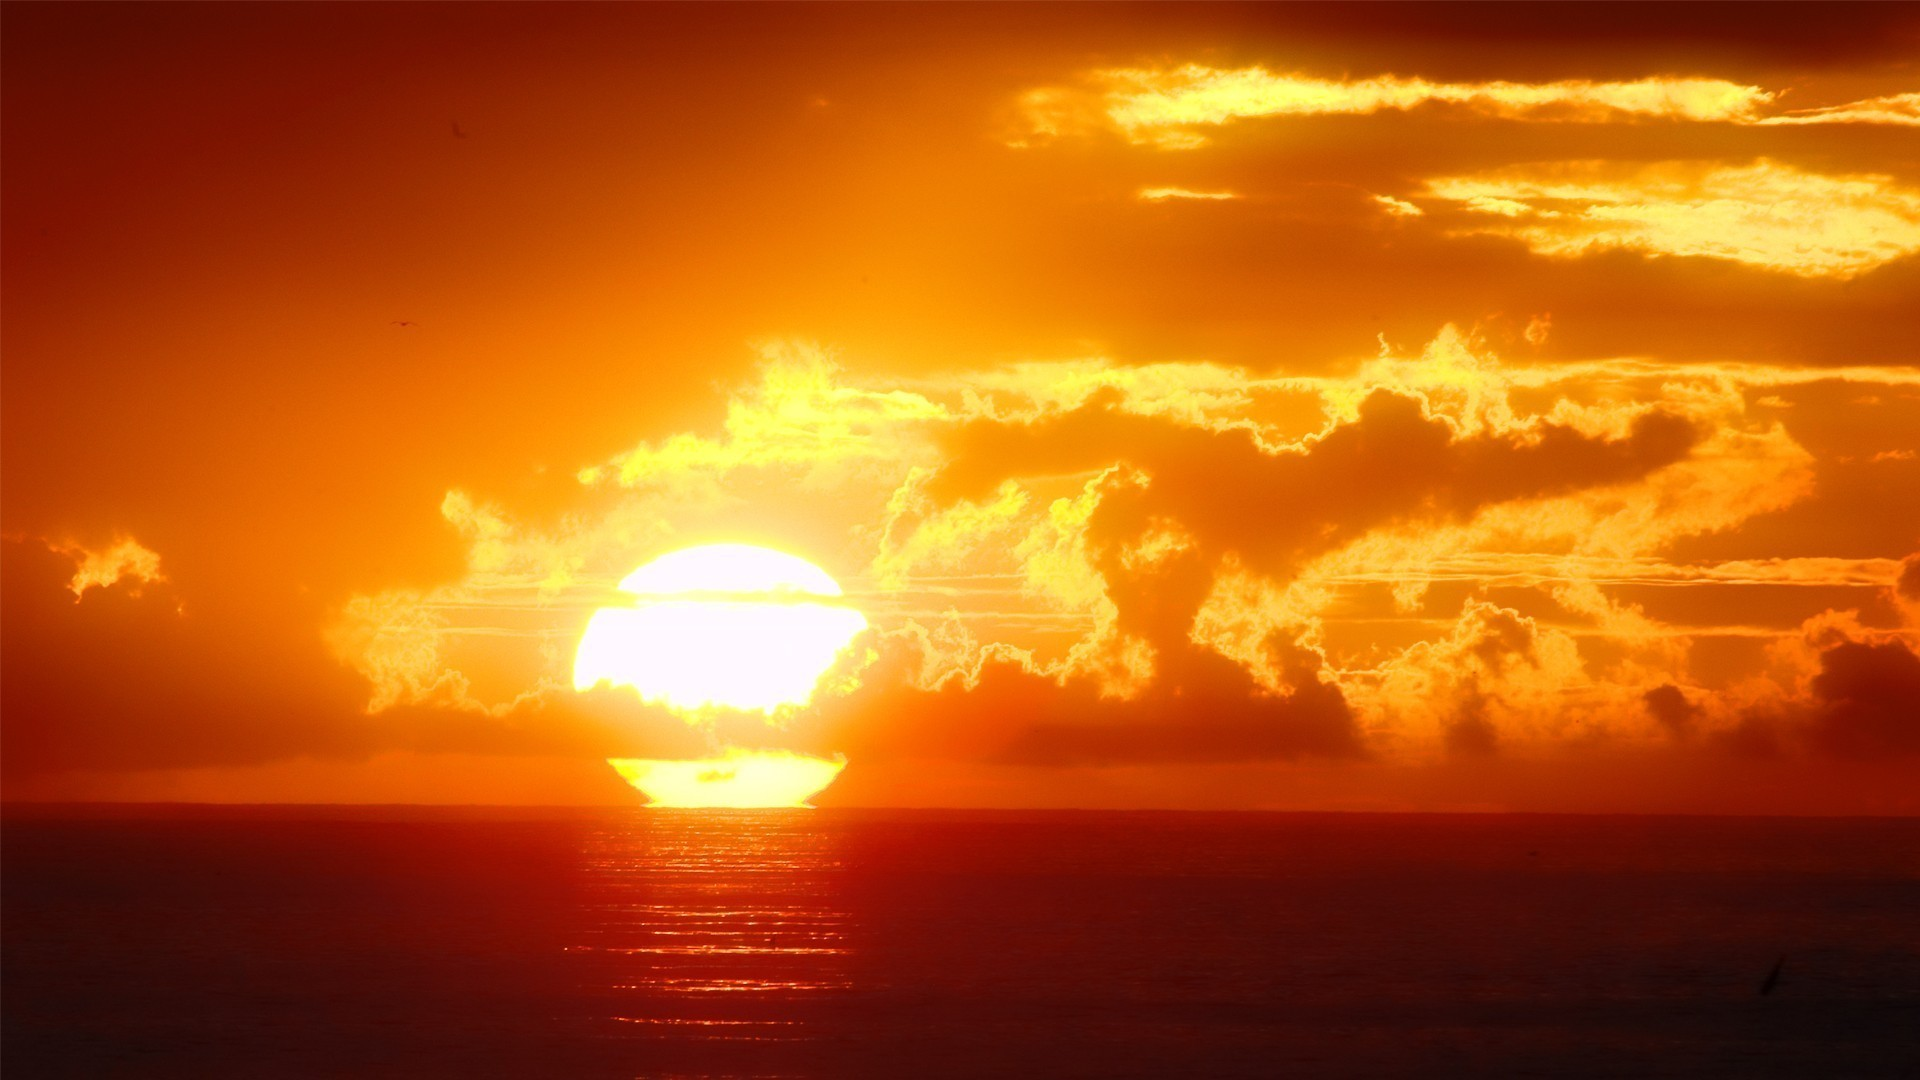 Sunset wallpaper   787057 1920x1080